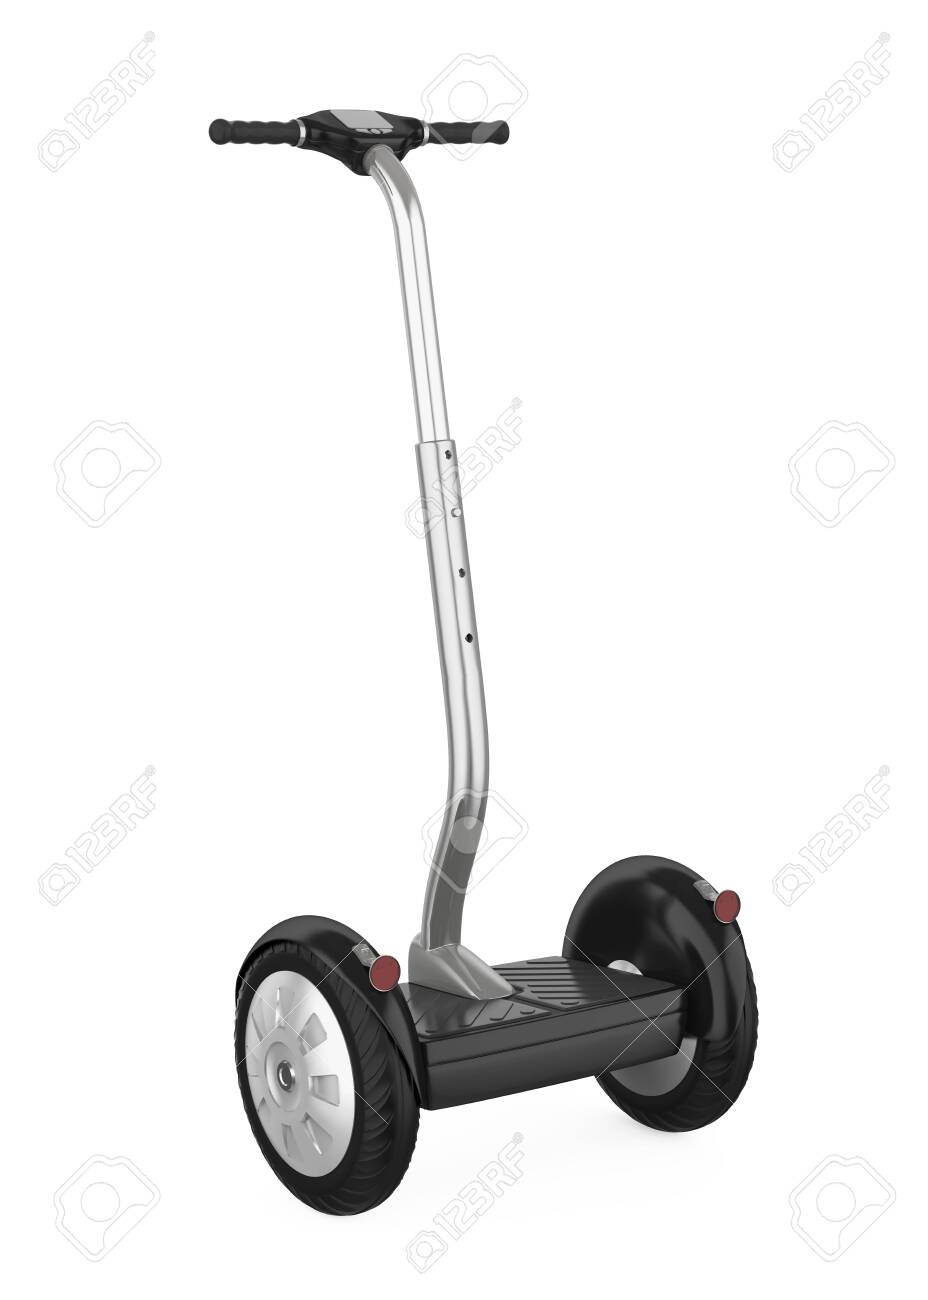 Hoverboard With Handle Isolated Stock Photo Picture And Royalty Free Image Image 133466422